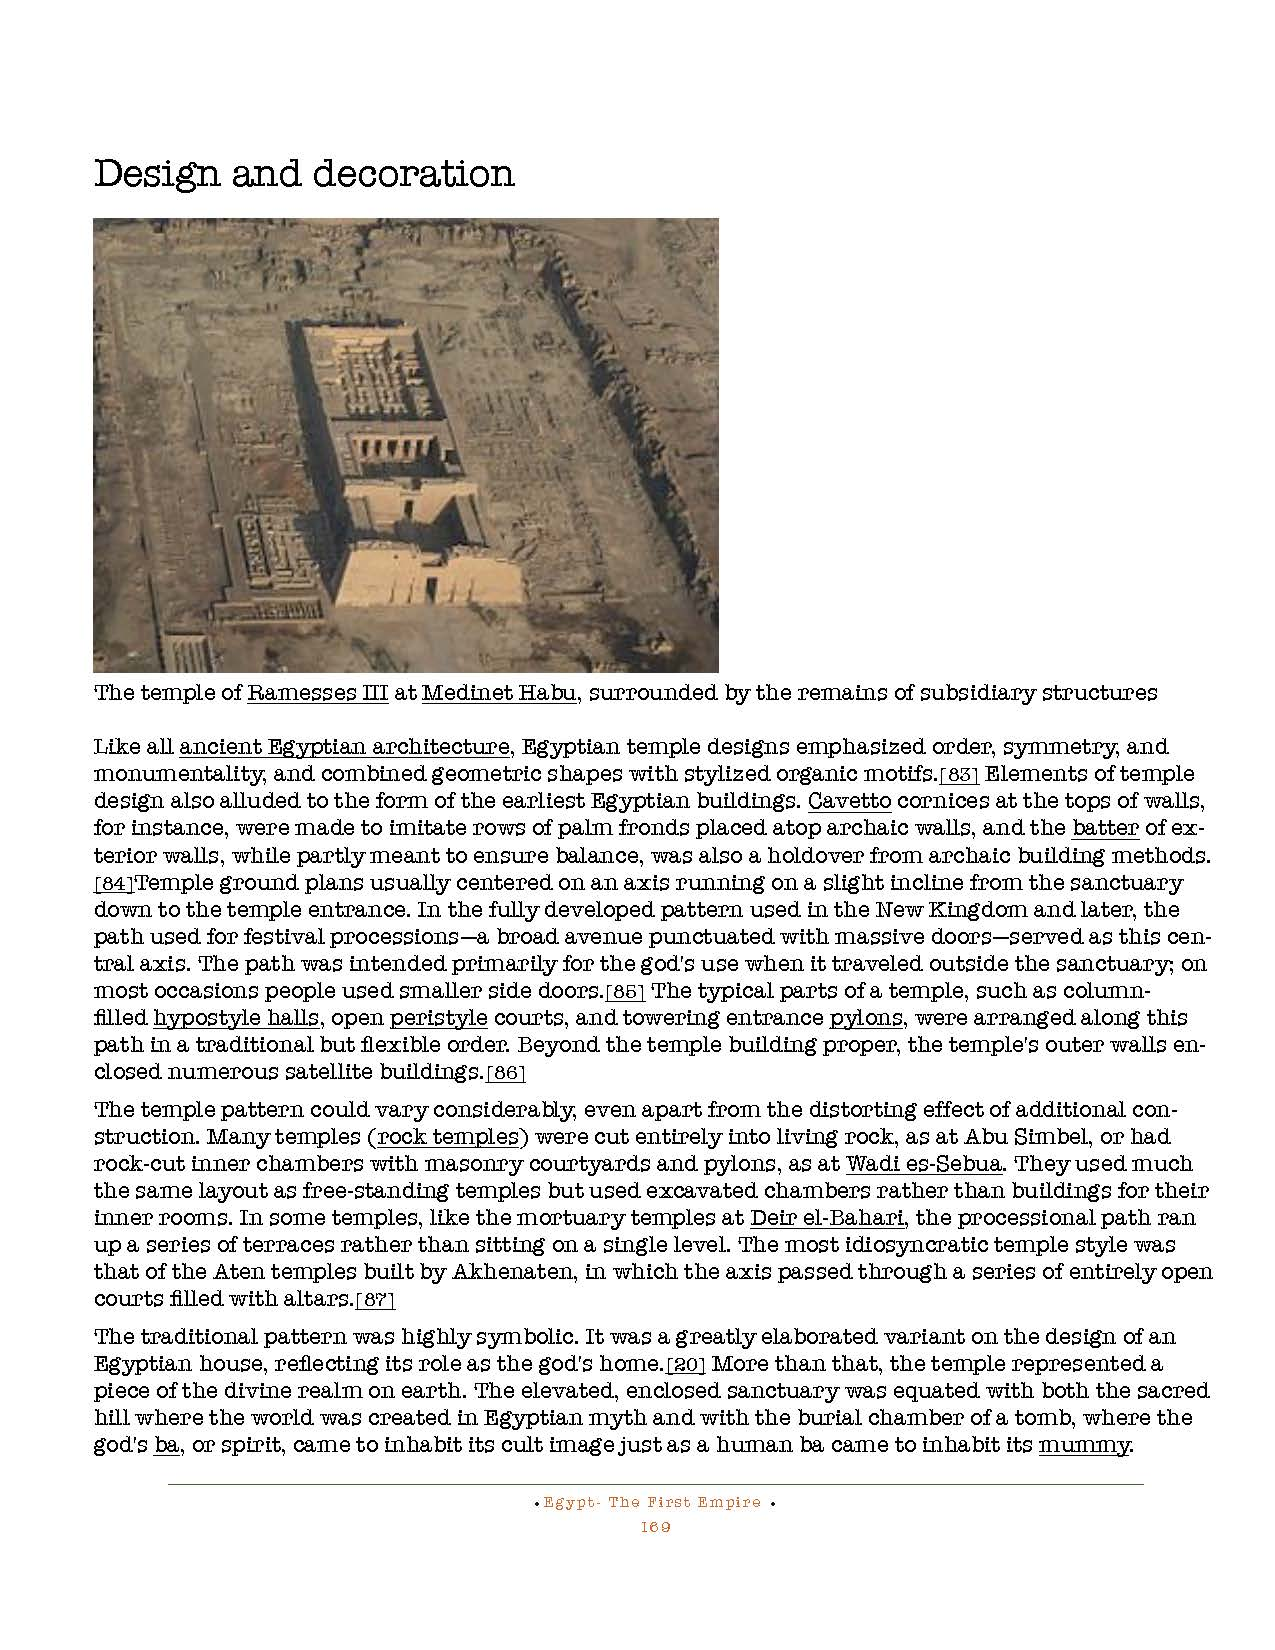 HOCE- Egypt  (First Empire) Notes_Page_169.jpg